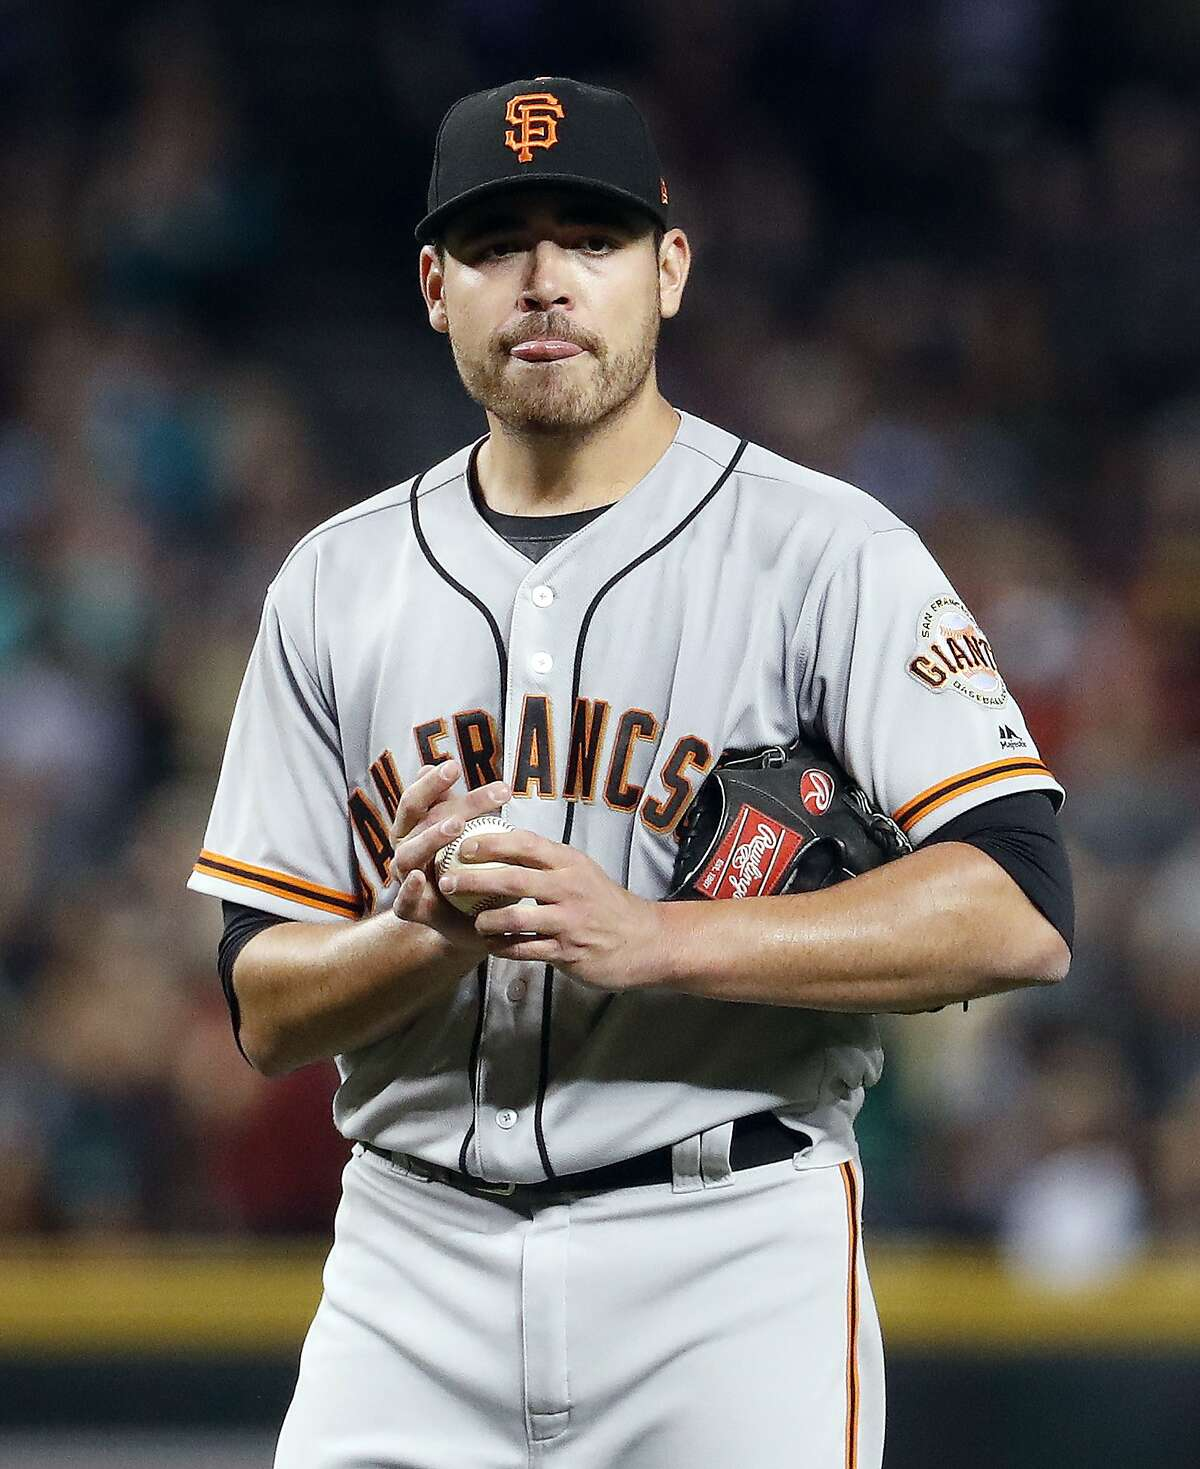 San Francisco Giants starting pitcher Matt Moore (45) looks to the dugout after giving up a grand slam against the Arizona Diamondbacks during the second inning of a baseball game, Tuesday, Sept. 26, 2017, in Phoenix. (AP Photo/Matt York)